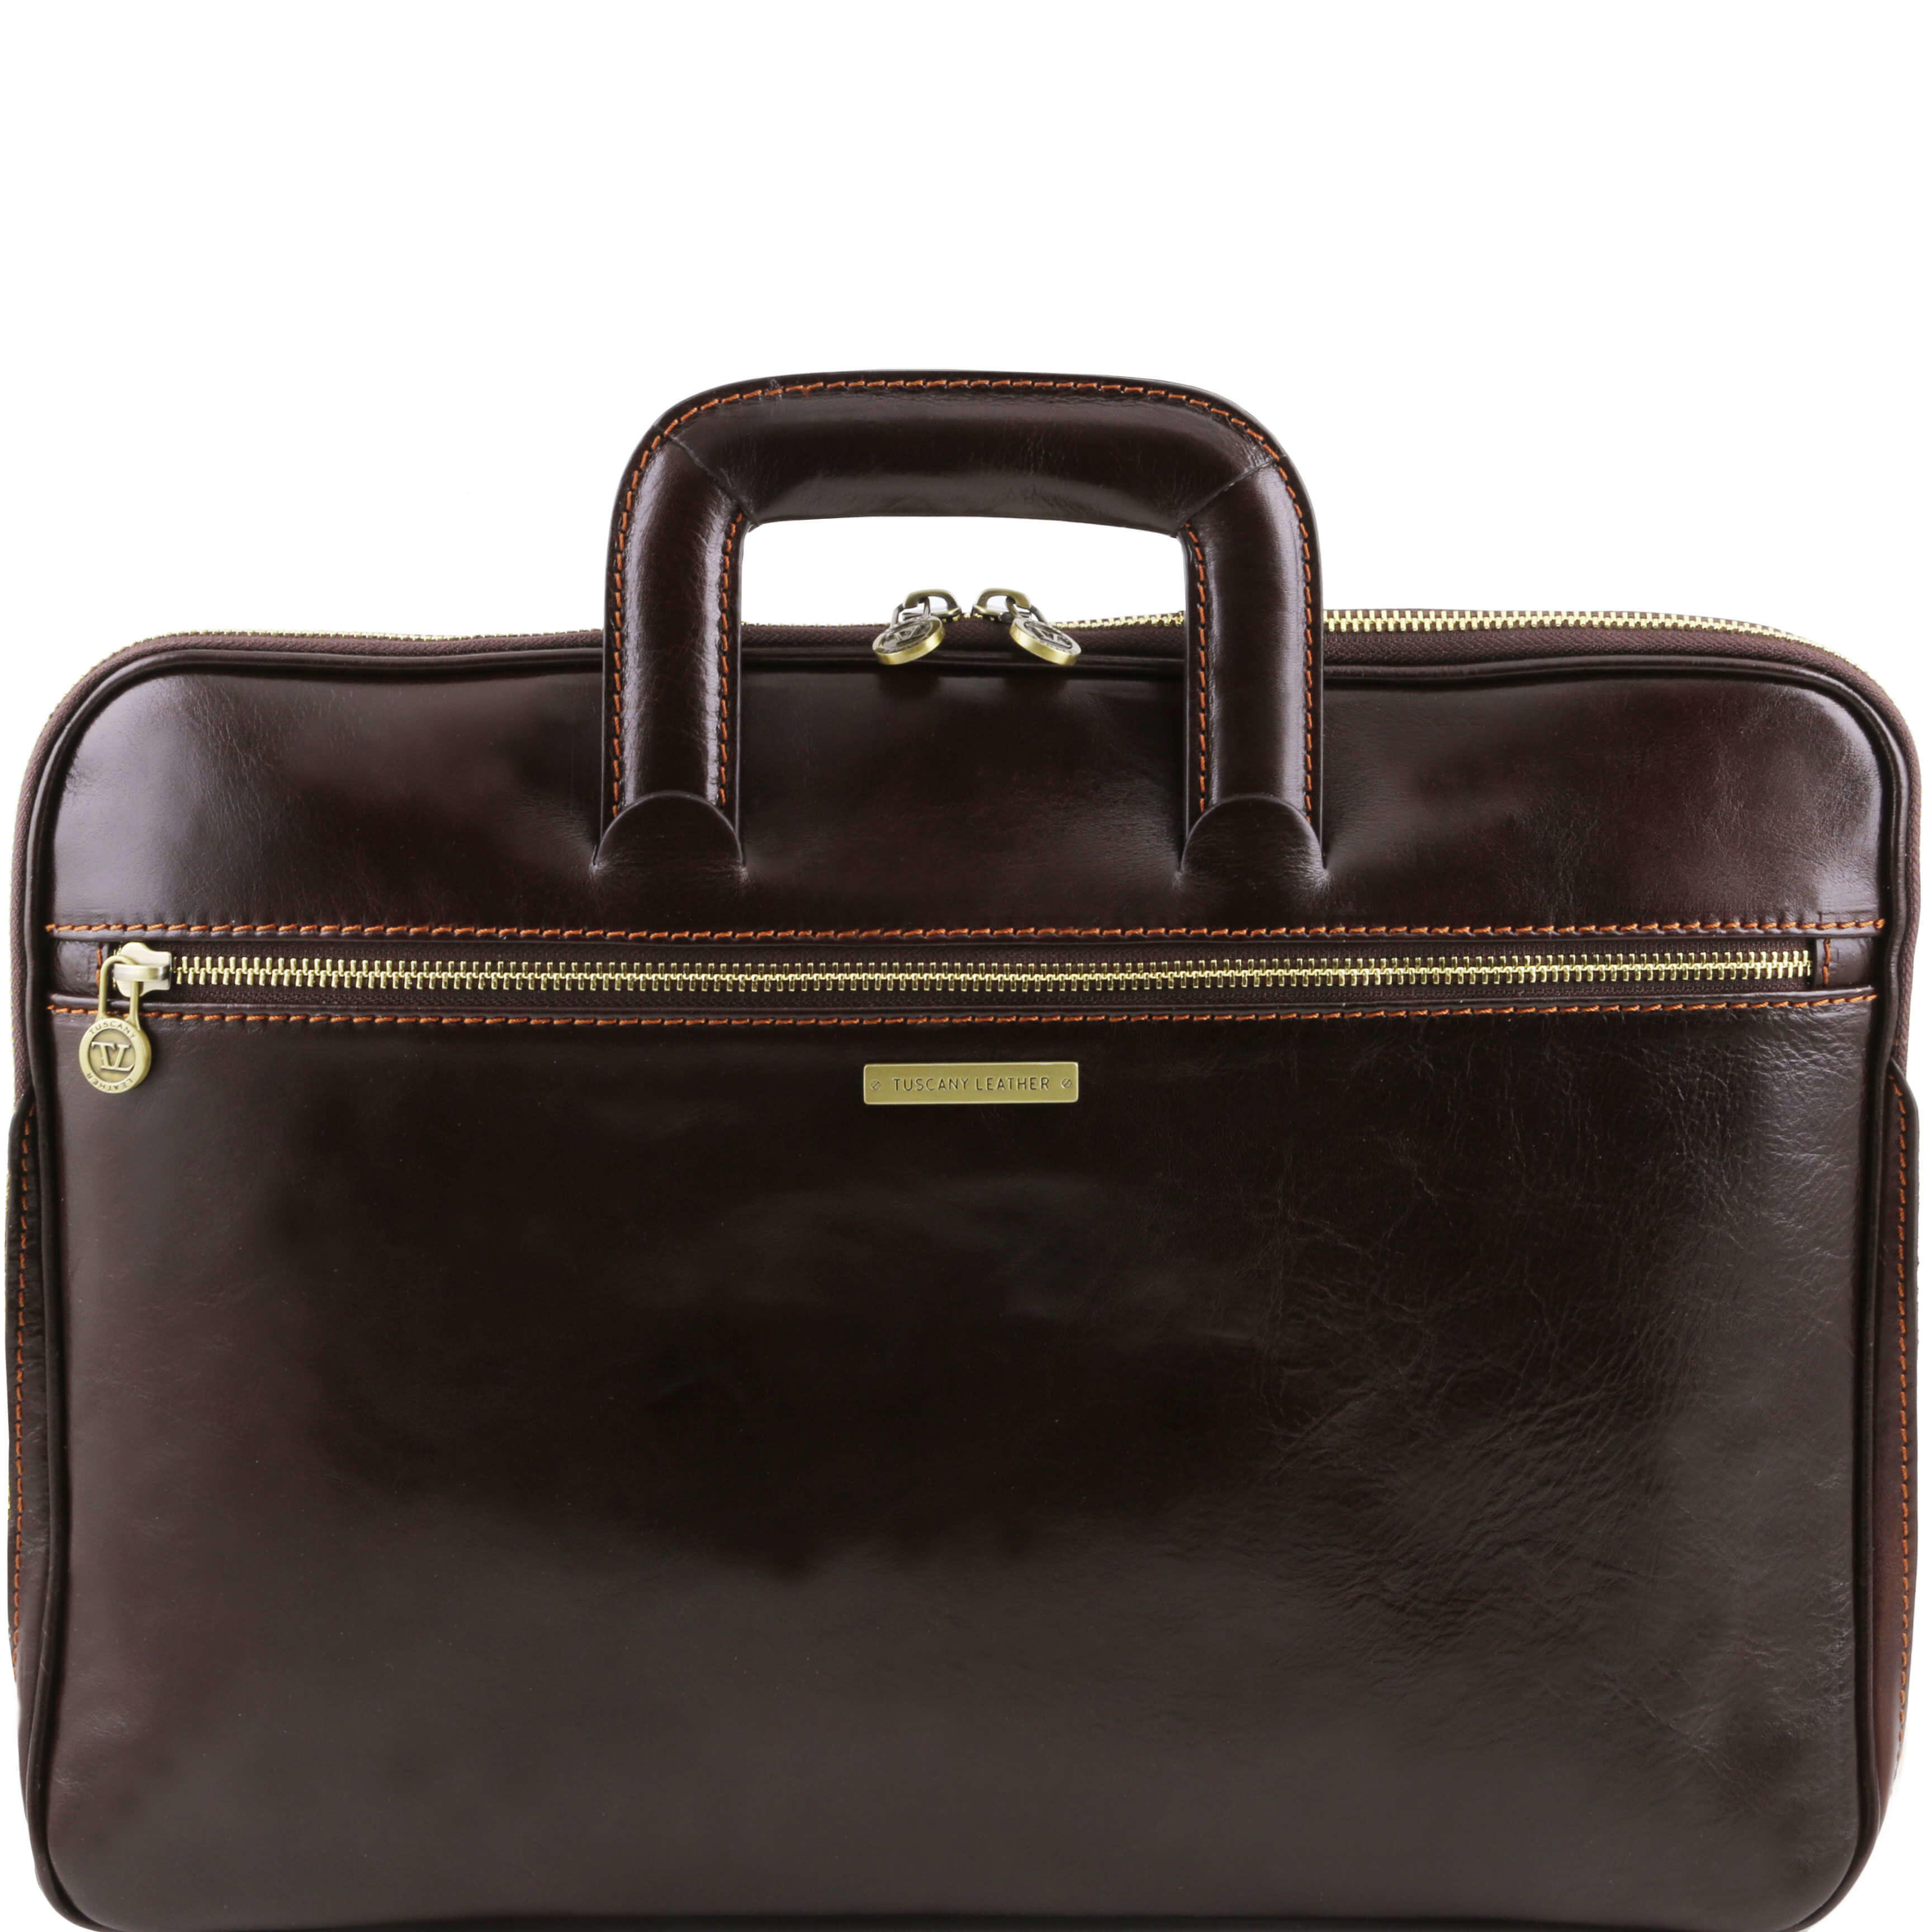 TL141324 Caserta Leather Document-Folio-Briefcase-Bag 5Colours +